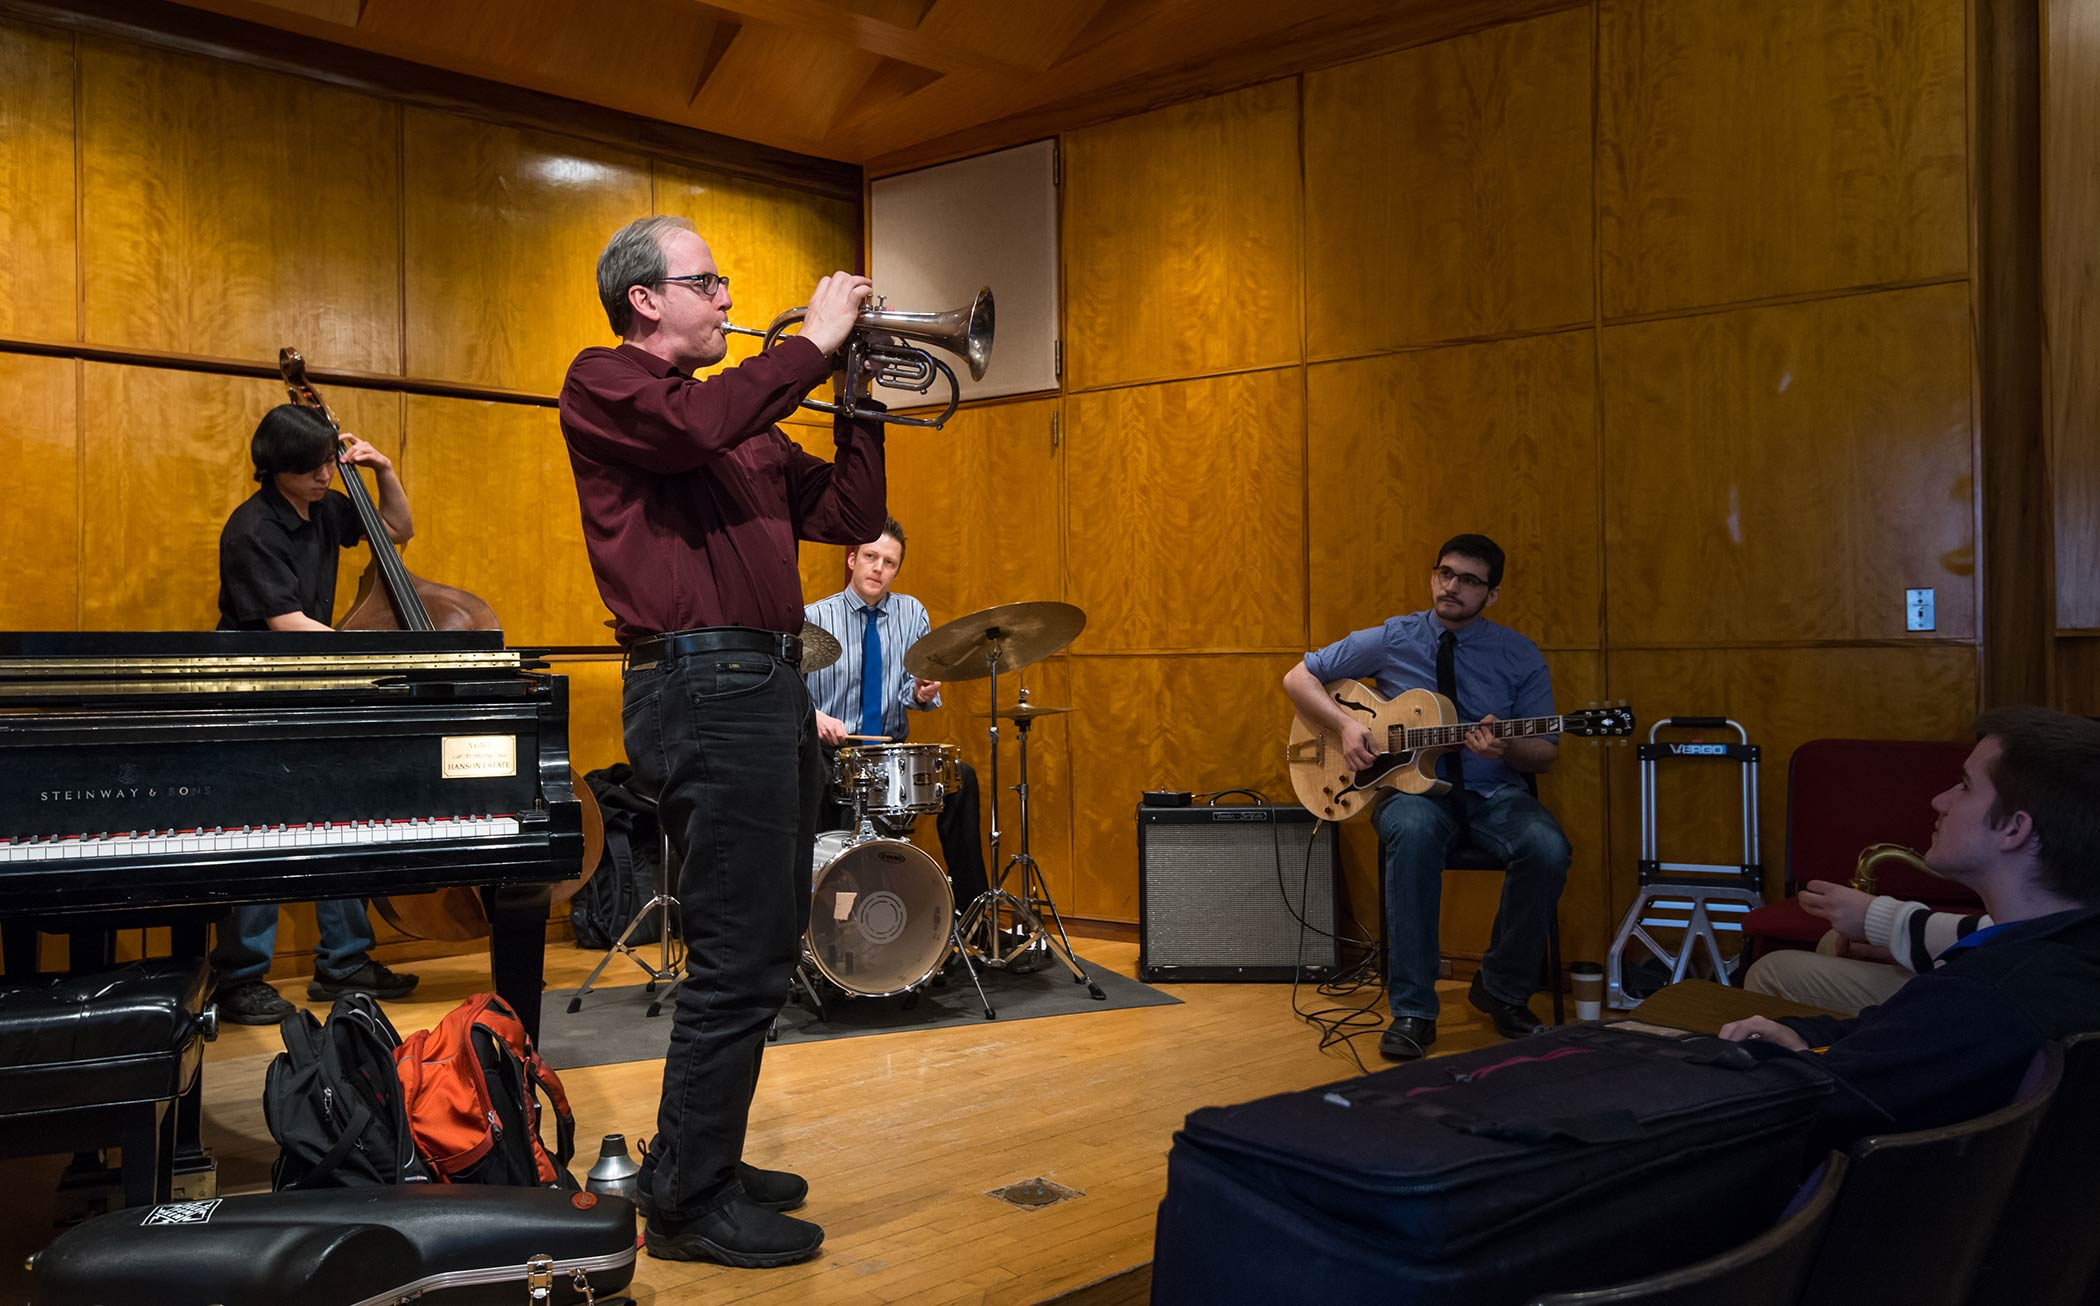 Jeff Beal playing horn in a recital hall with students